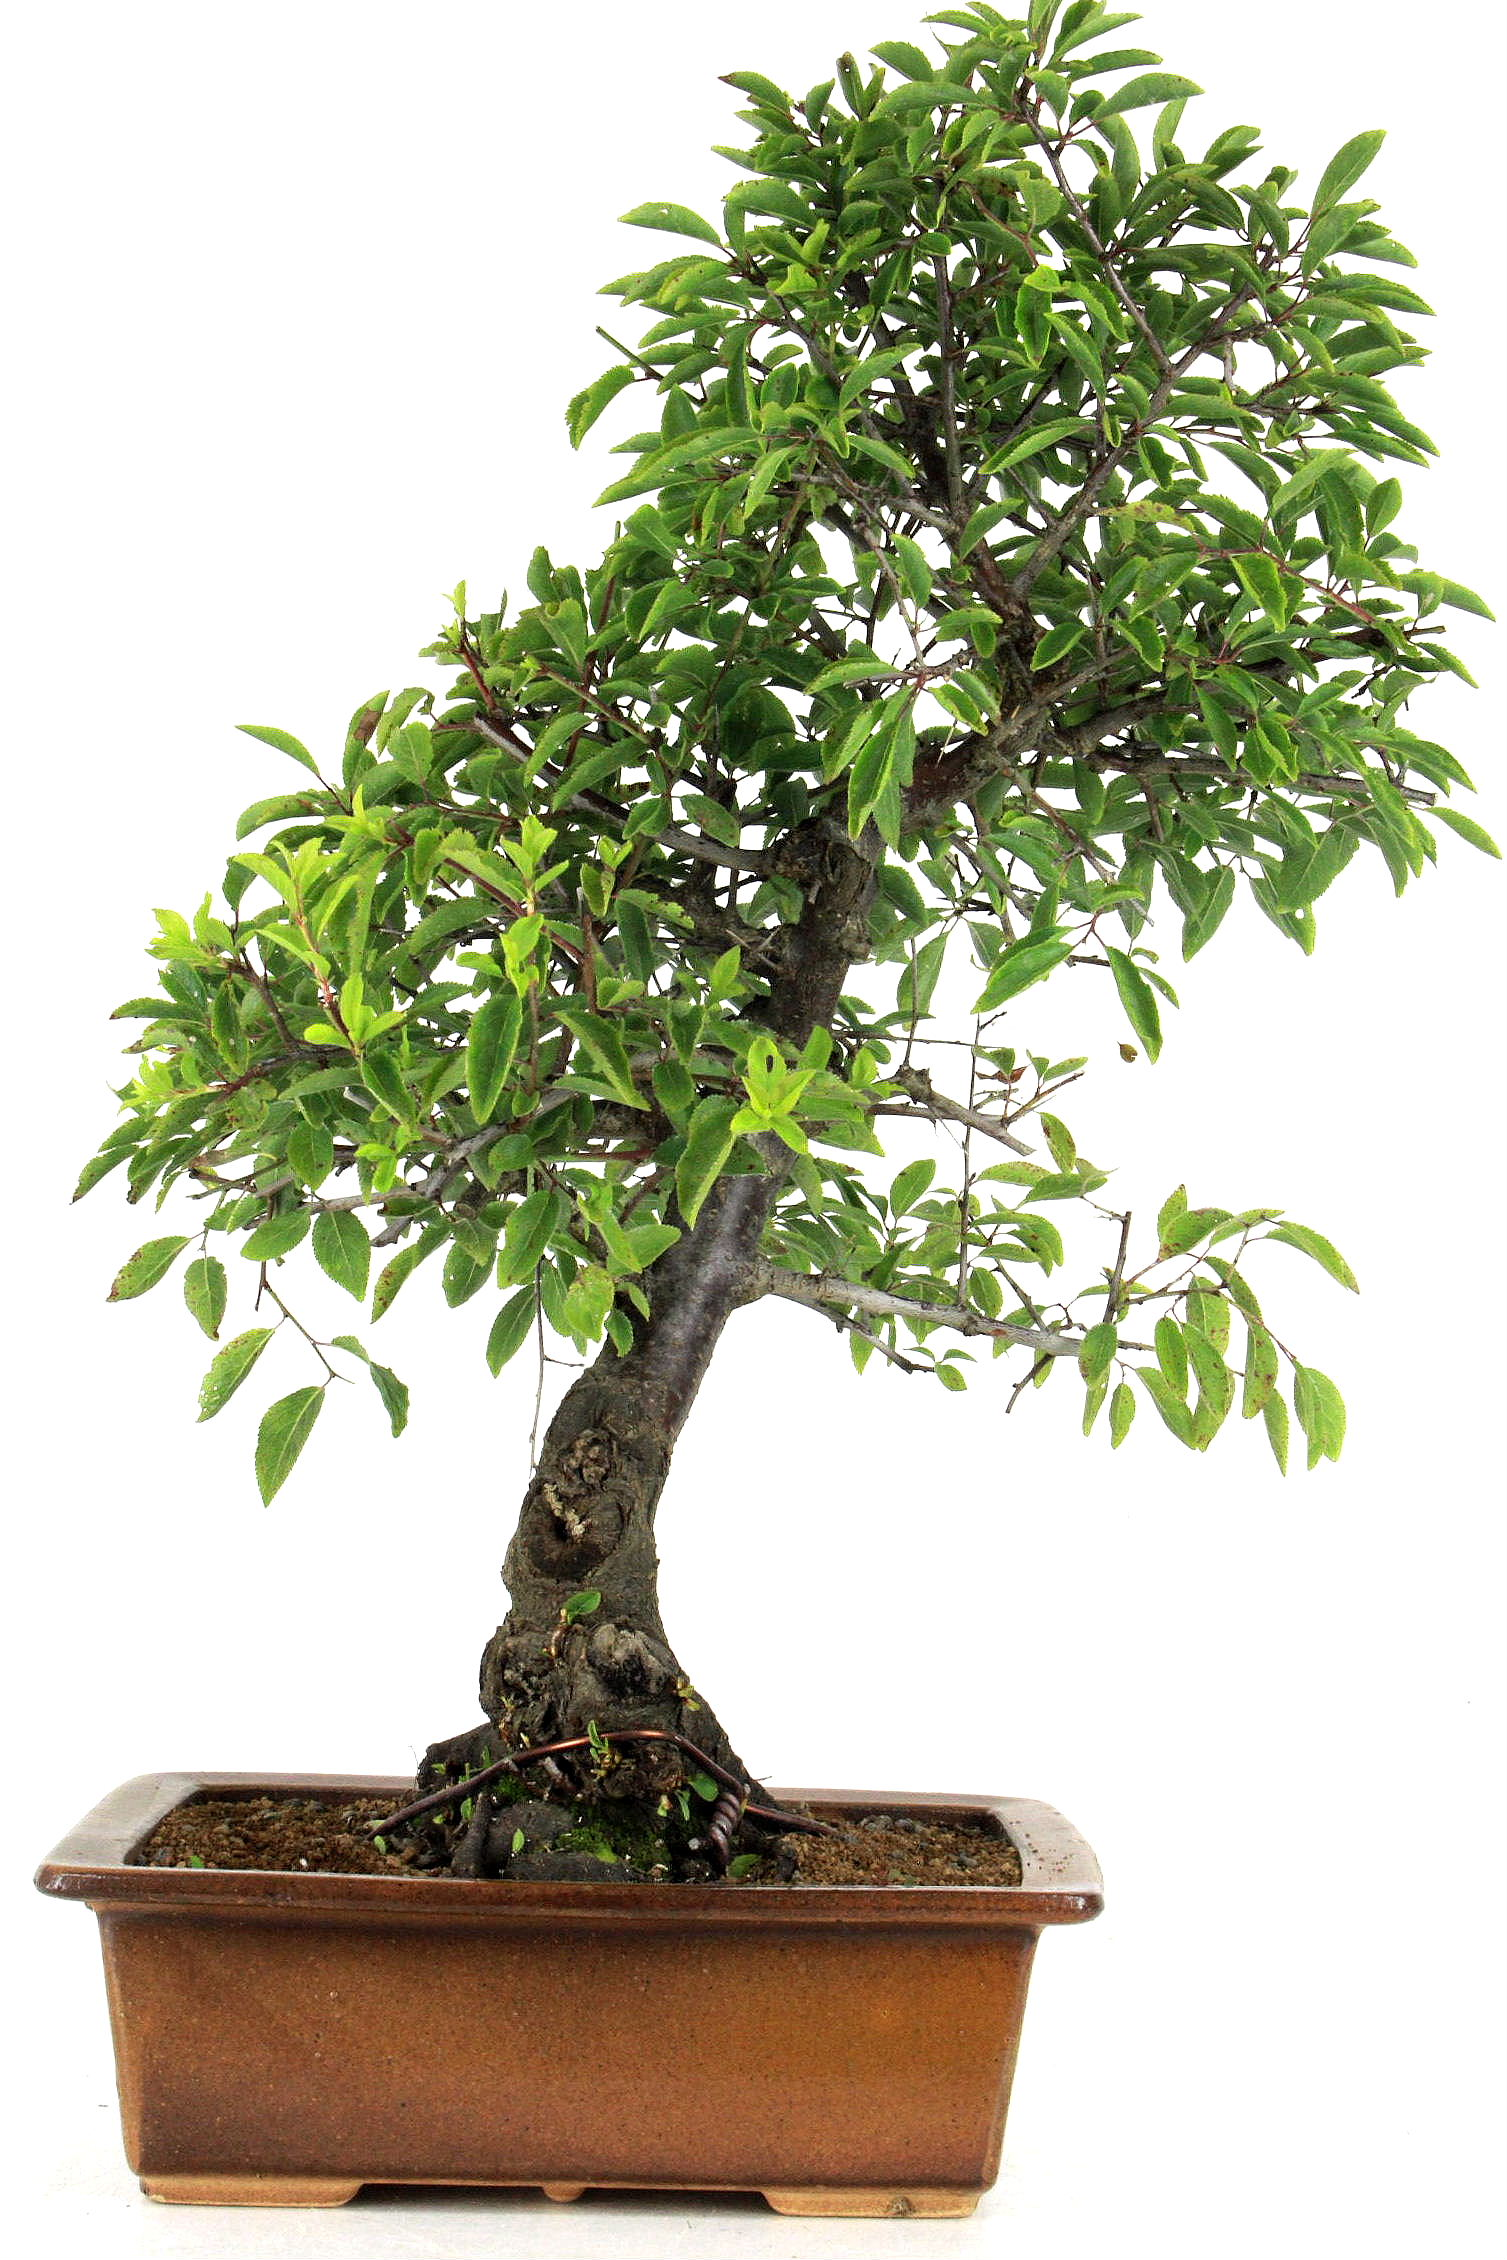 schlehe prunus spinosa 49 cm 245 bei oyaki bonsai kaufen. Black Bedroom Furniture Sets. Home Design Ideas